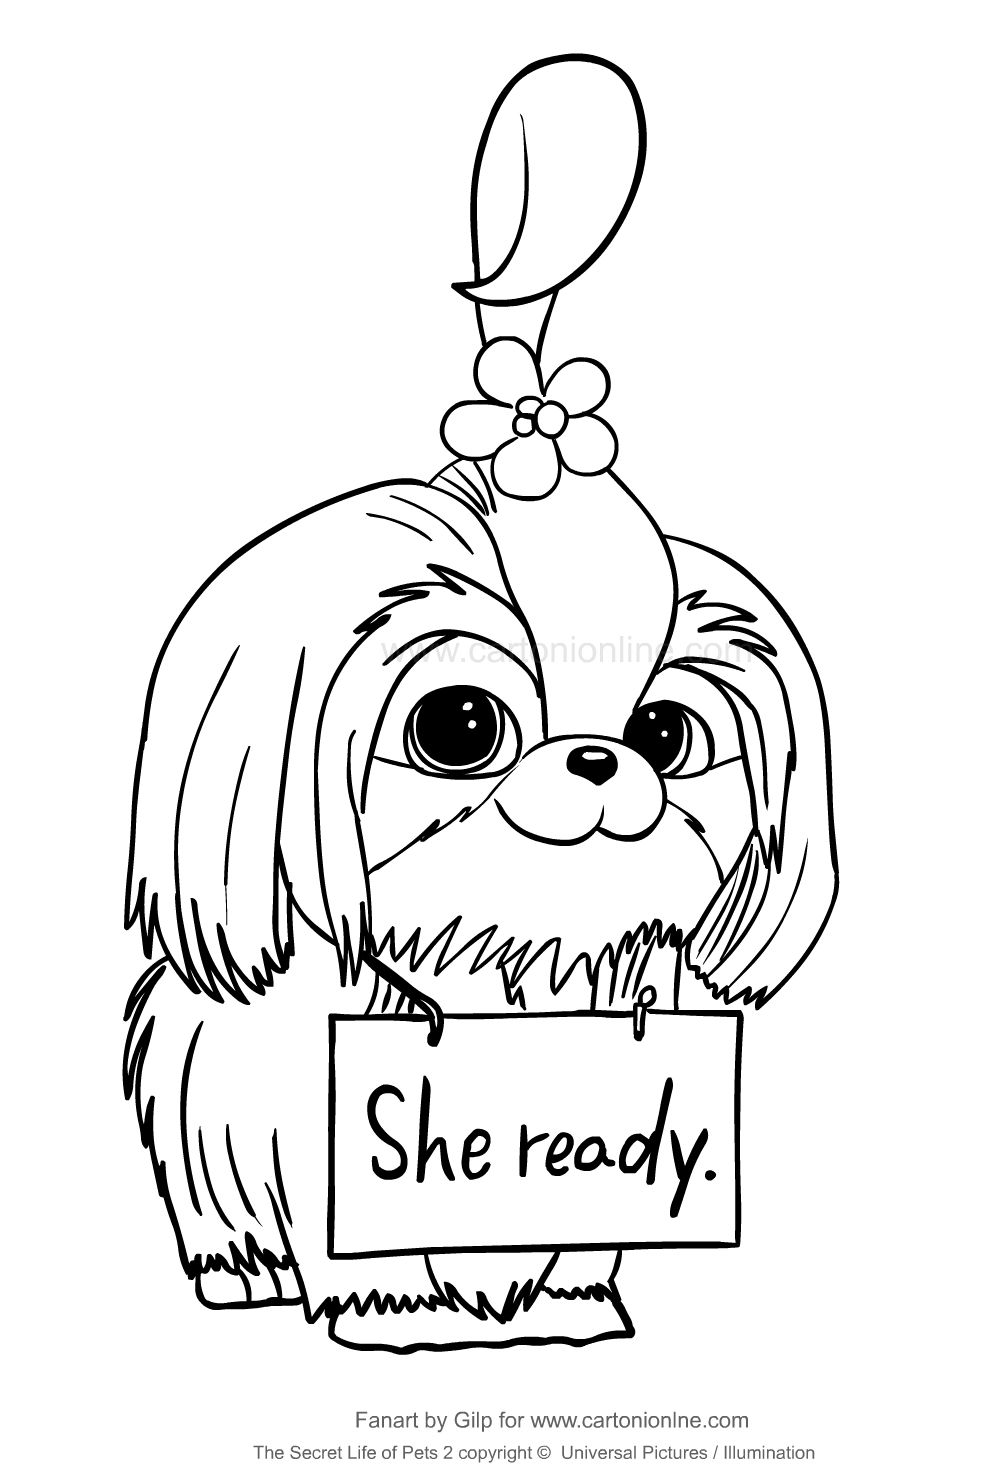 Daisy From The Secret Life Of Pets 2 Coloring Page To Print And Coloring In 2020 Cartoon Coloring Pages Coloring Pages Pets Drawing